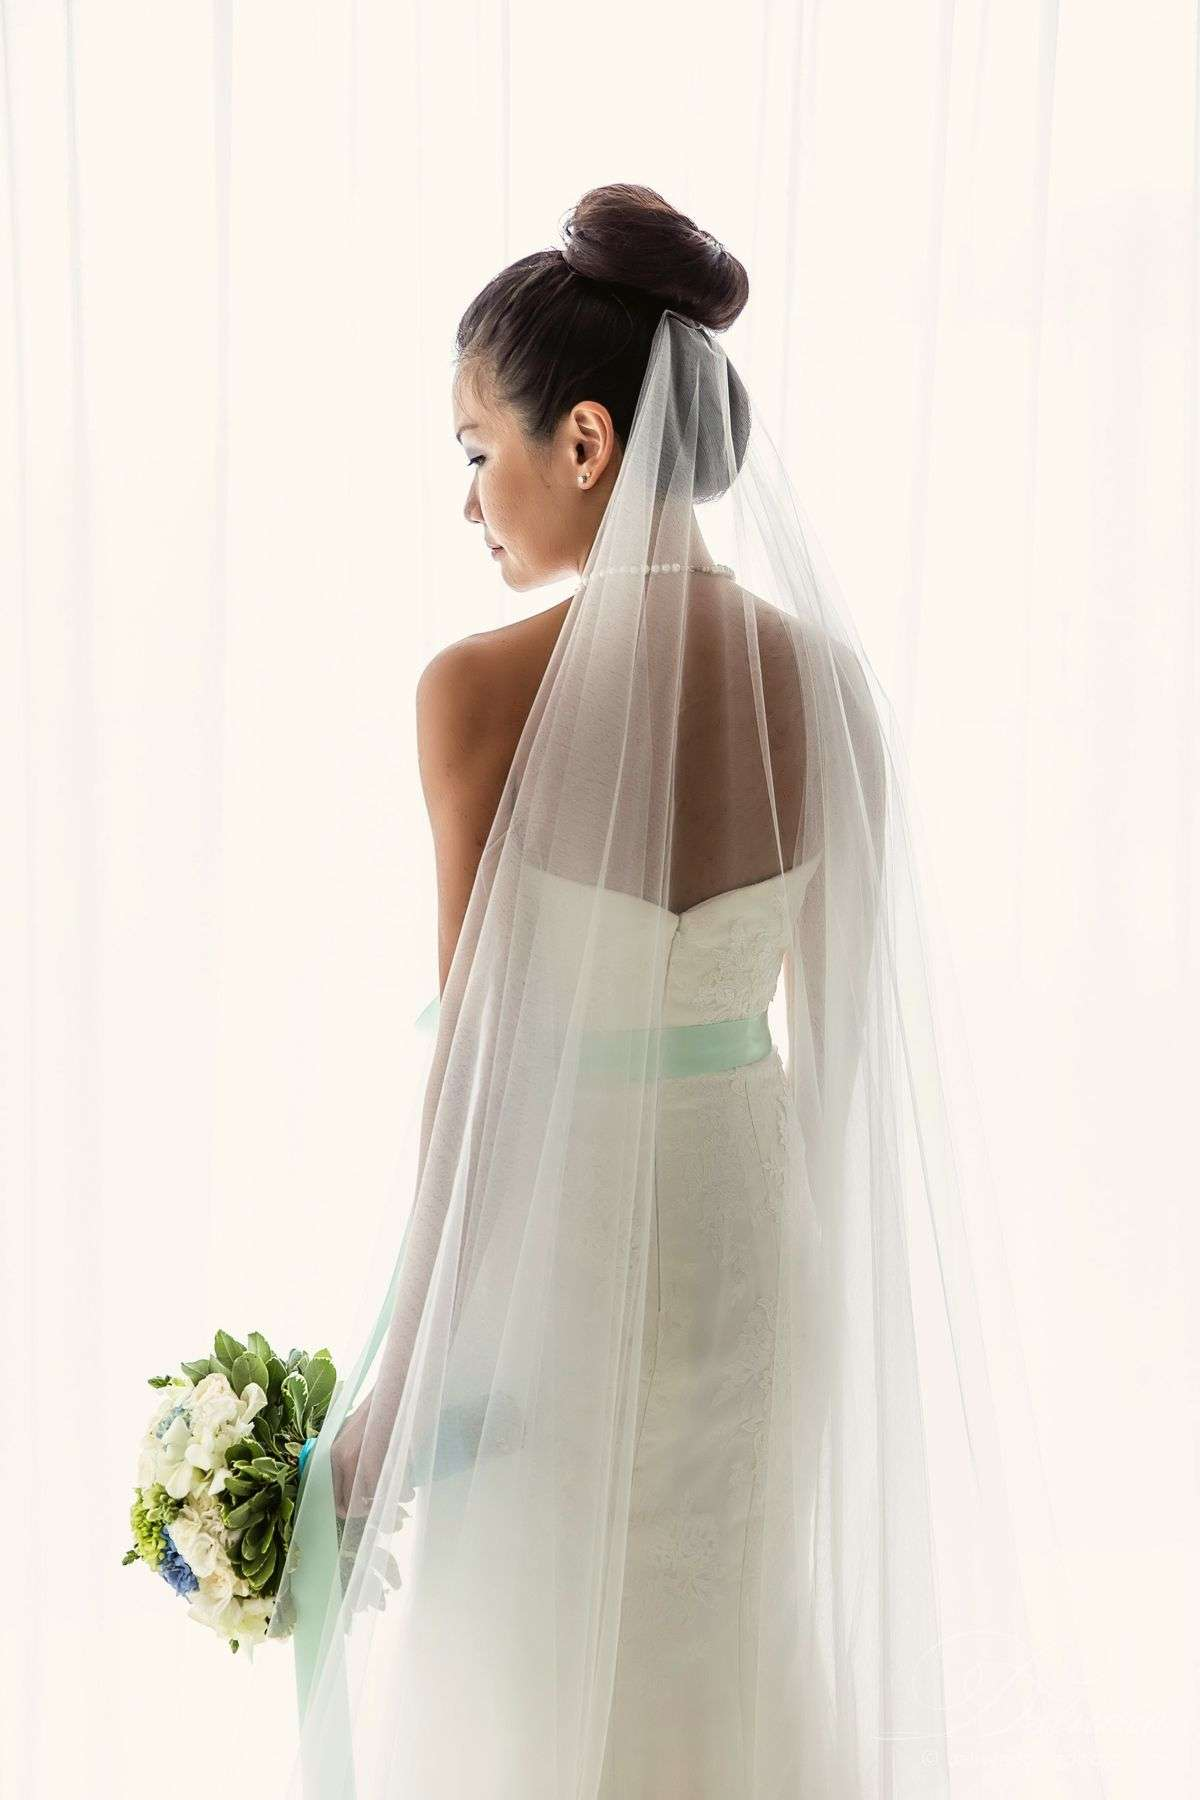 fashion wedding photos